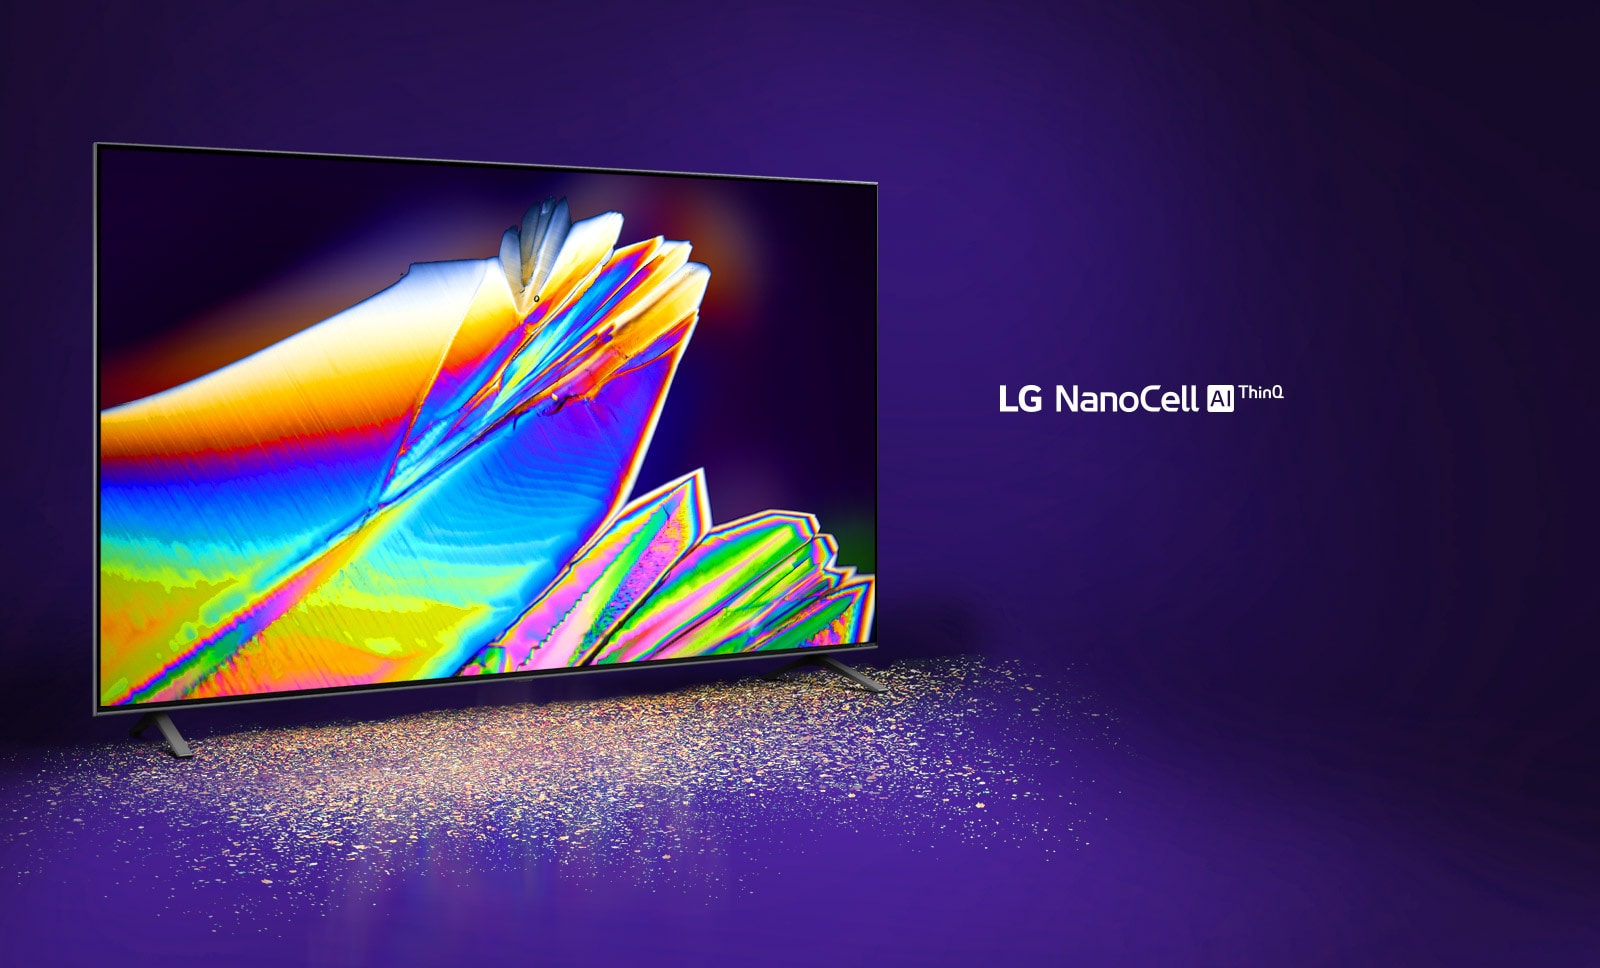 The image of micro leaves on the TV screen